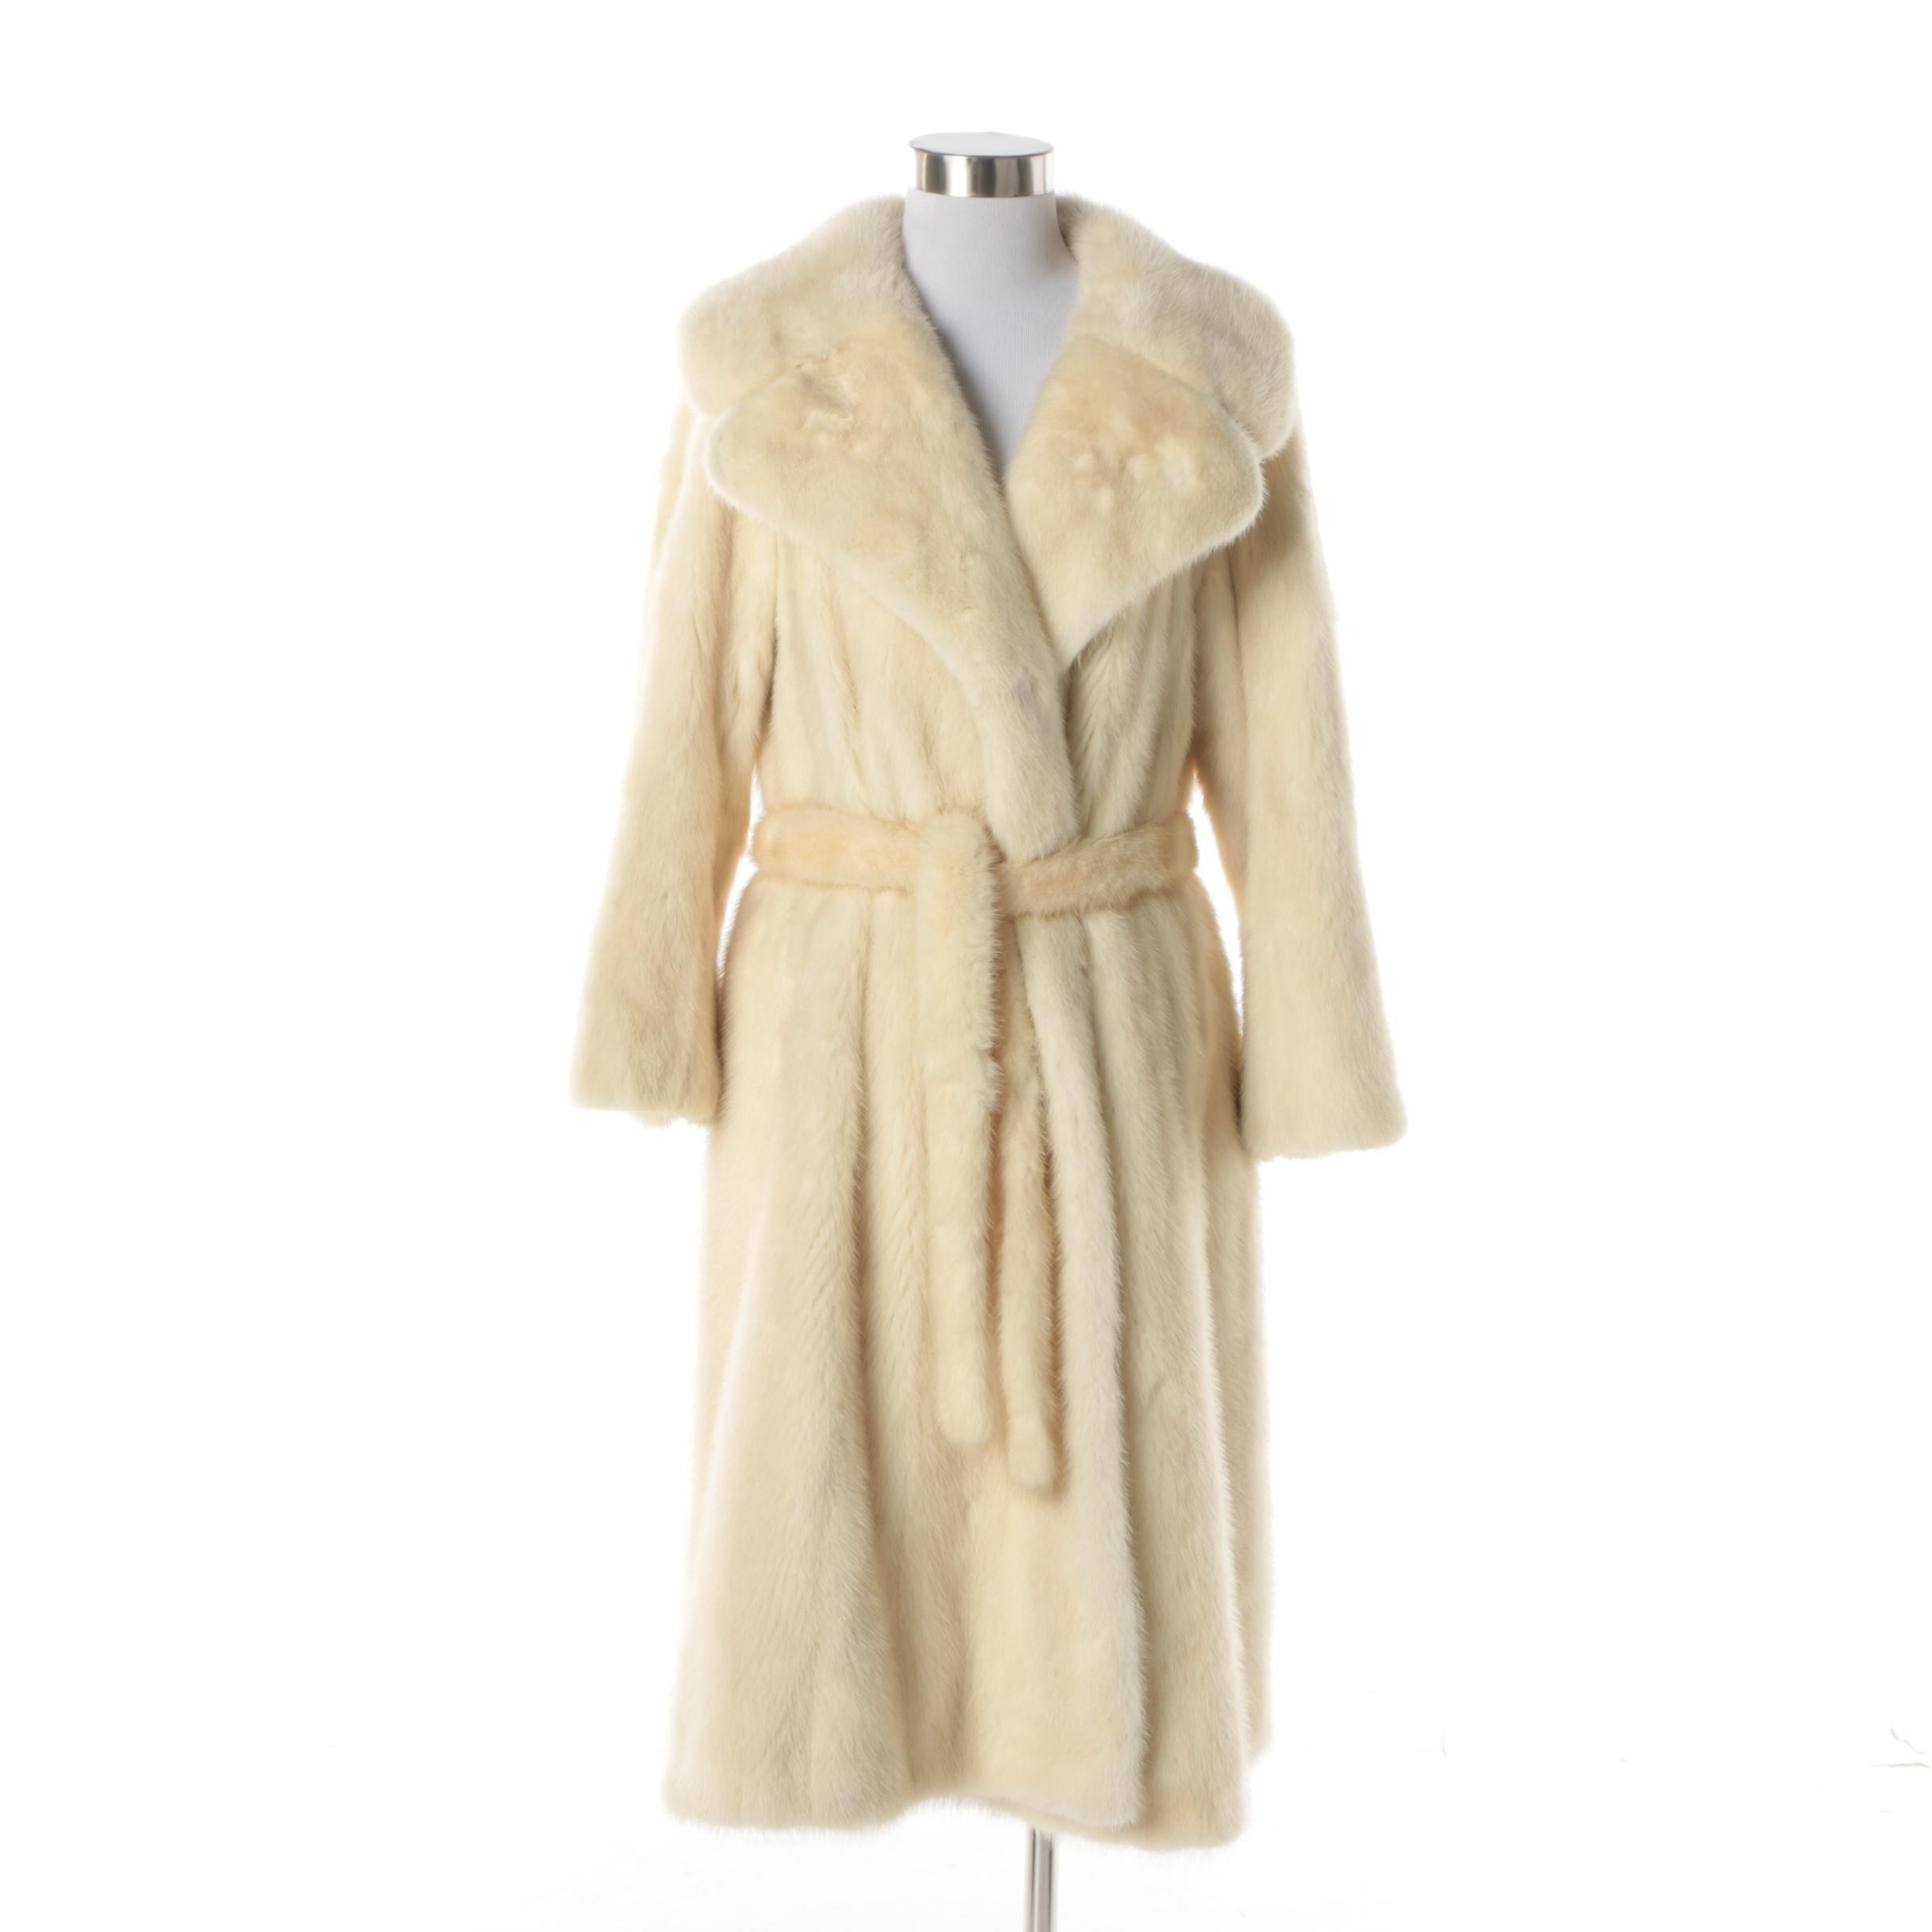 Women's Vintage Gartenhaus Blonde Mink Fur Coat